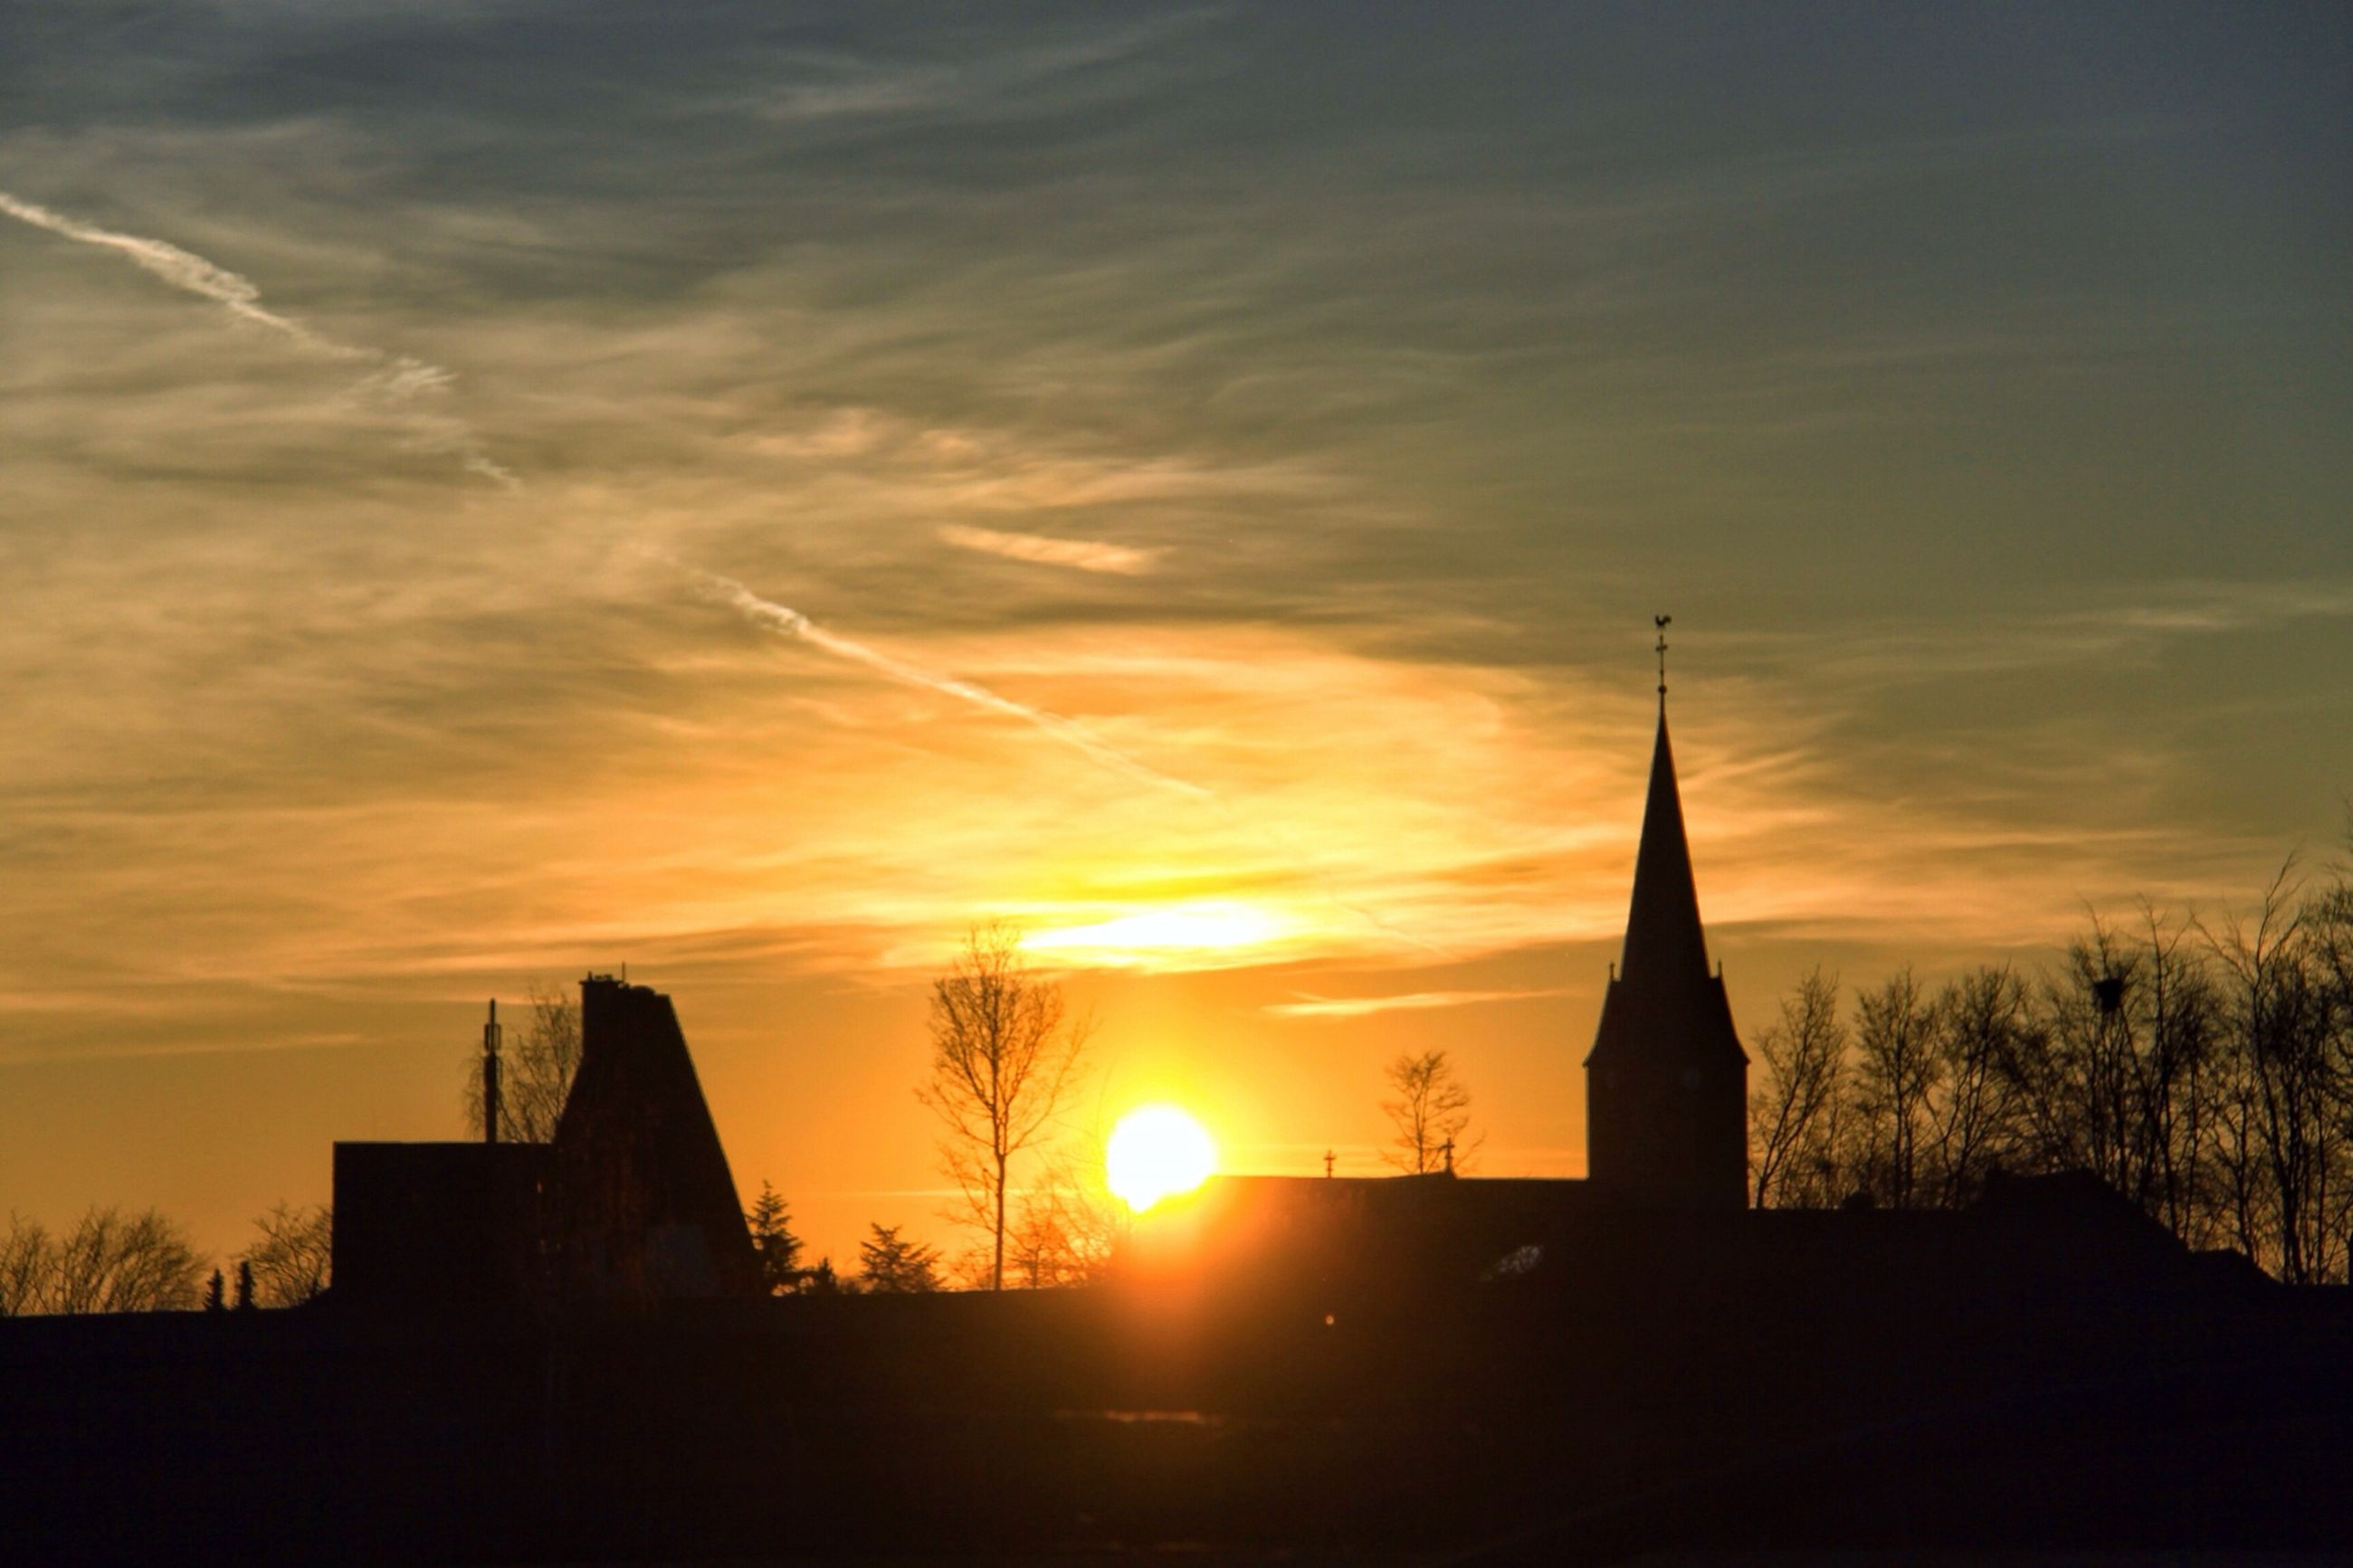 sunset, silhouette, architecture, building exterior, built structure, sky, place of worship, religion, sun, orange color, church, spirituality, cloud - sky, low angle view, tower, sunlight, cloud, outdoors